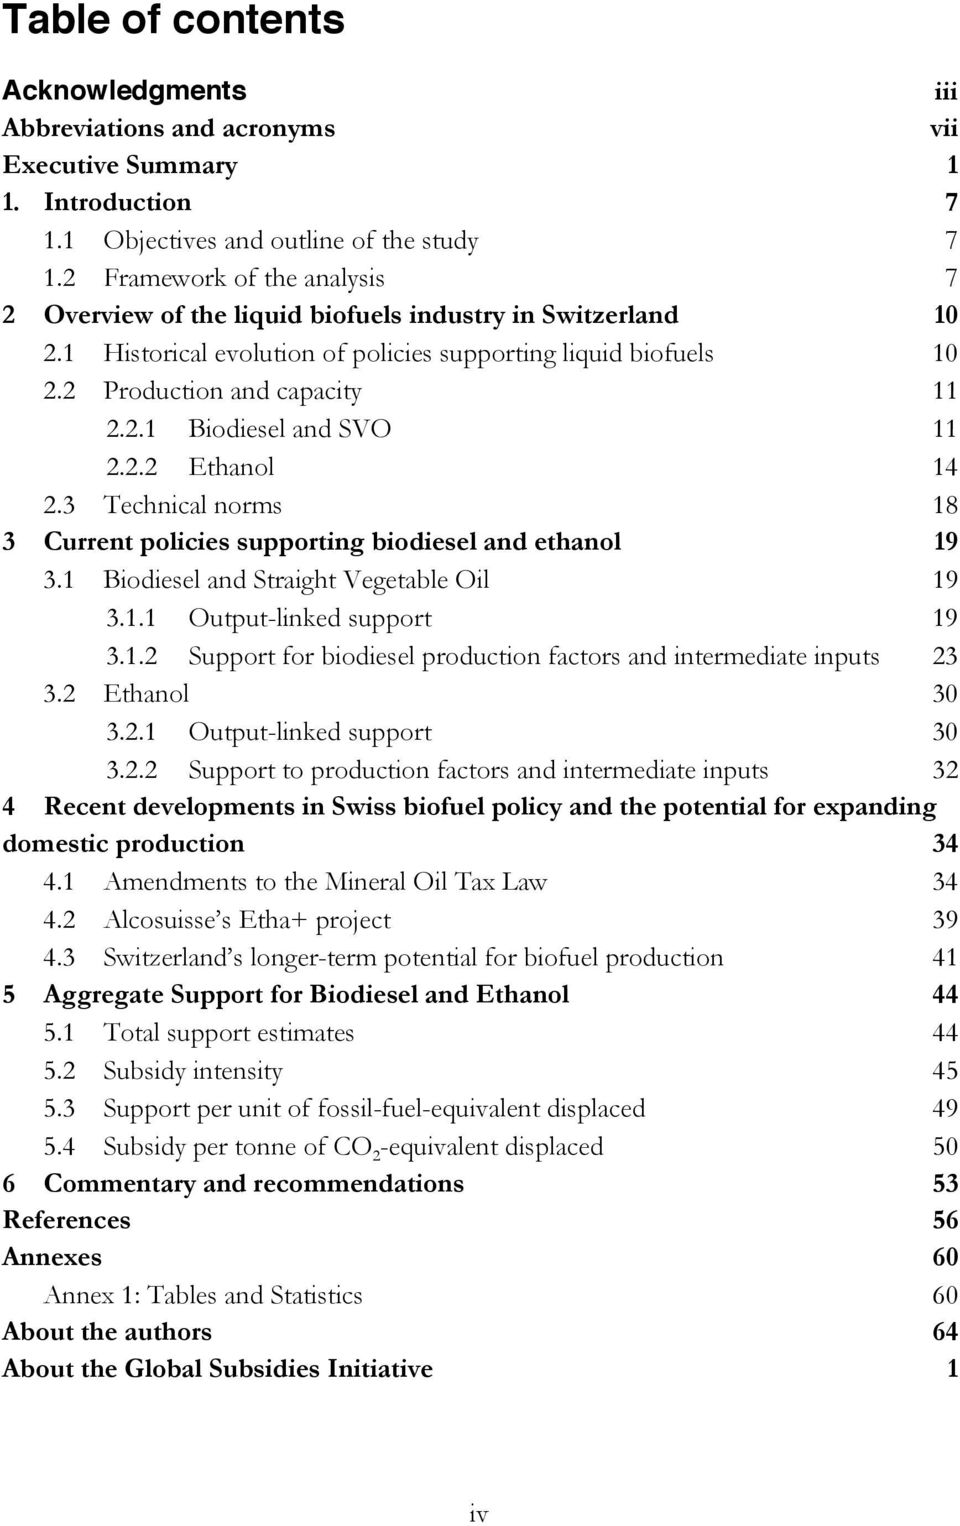 2.2 Ethanol 14 2.3 Technical norms 18 3 Current policies supporting biodiesel and ethanol 19 3.1 Biodiesel and Straight Vegetable Oil 19 3.1.1 Output-linked support 19 3.1.2 Support for biodiesel production factors and intermediate inputs 23 3.